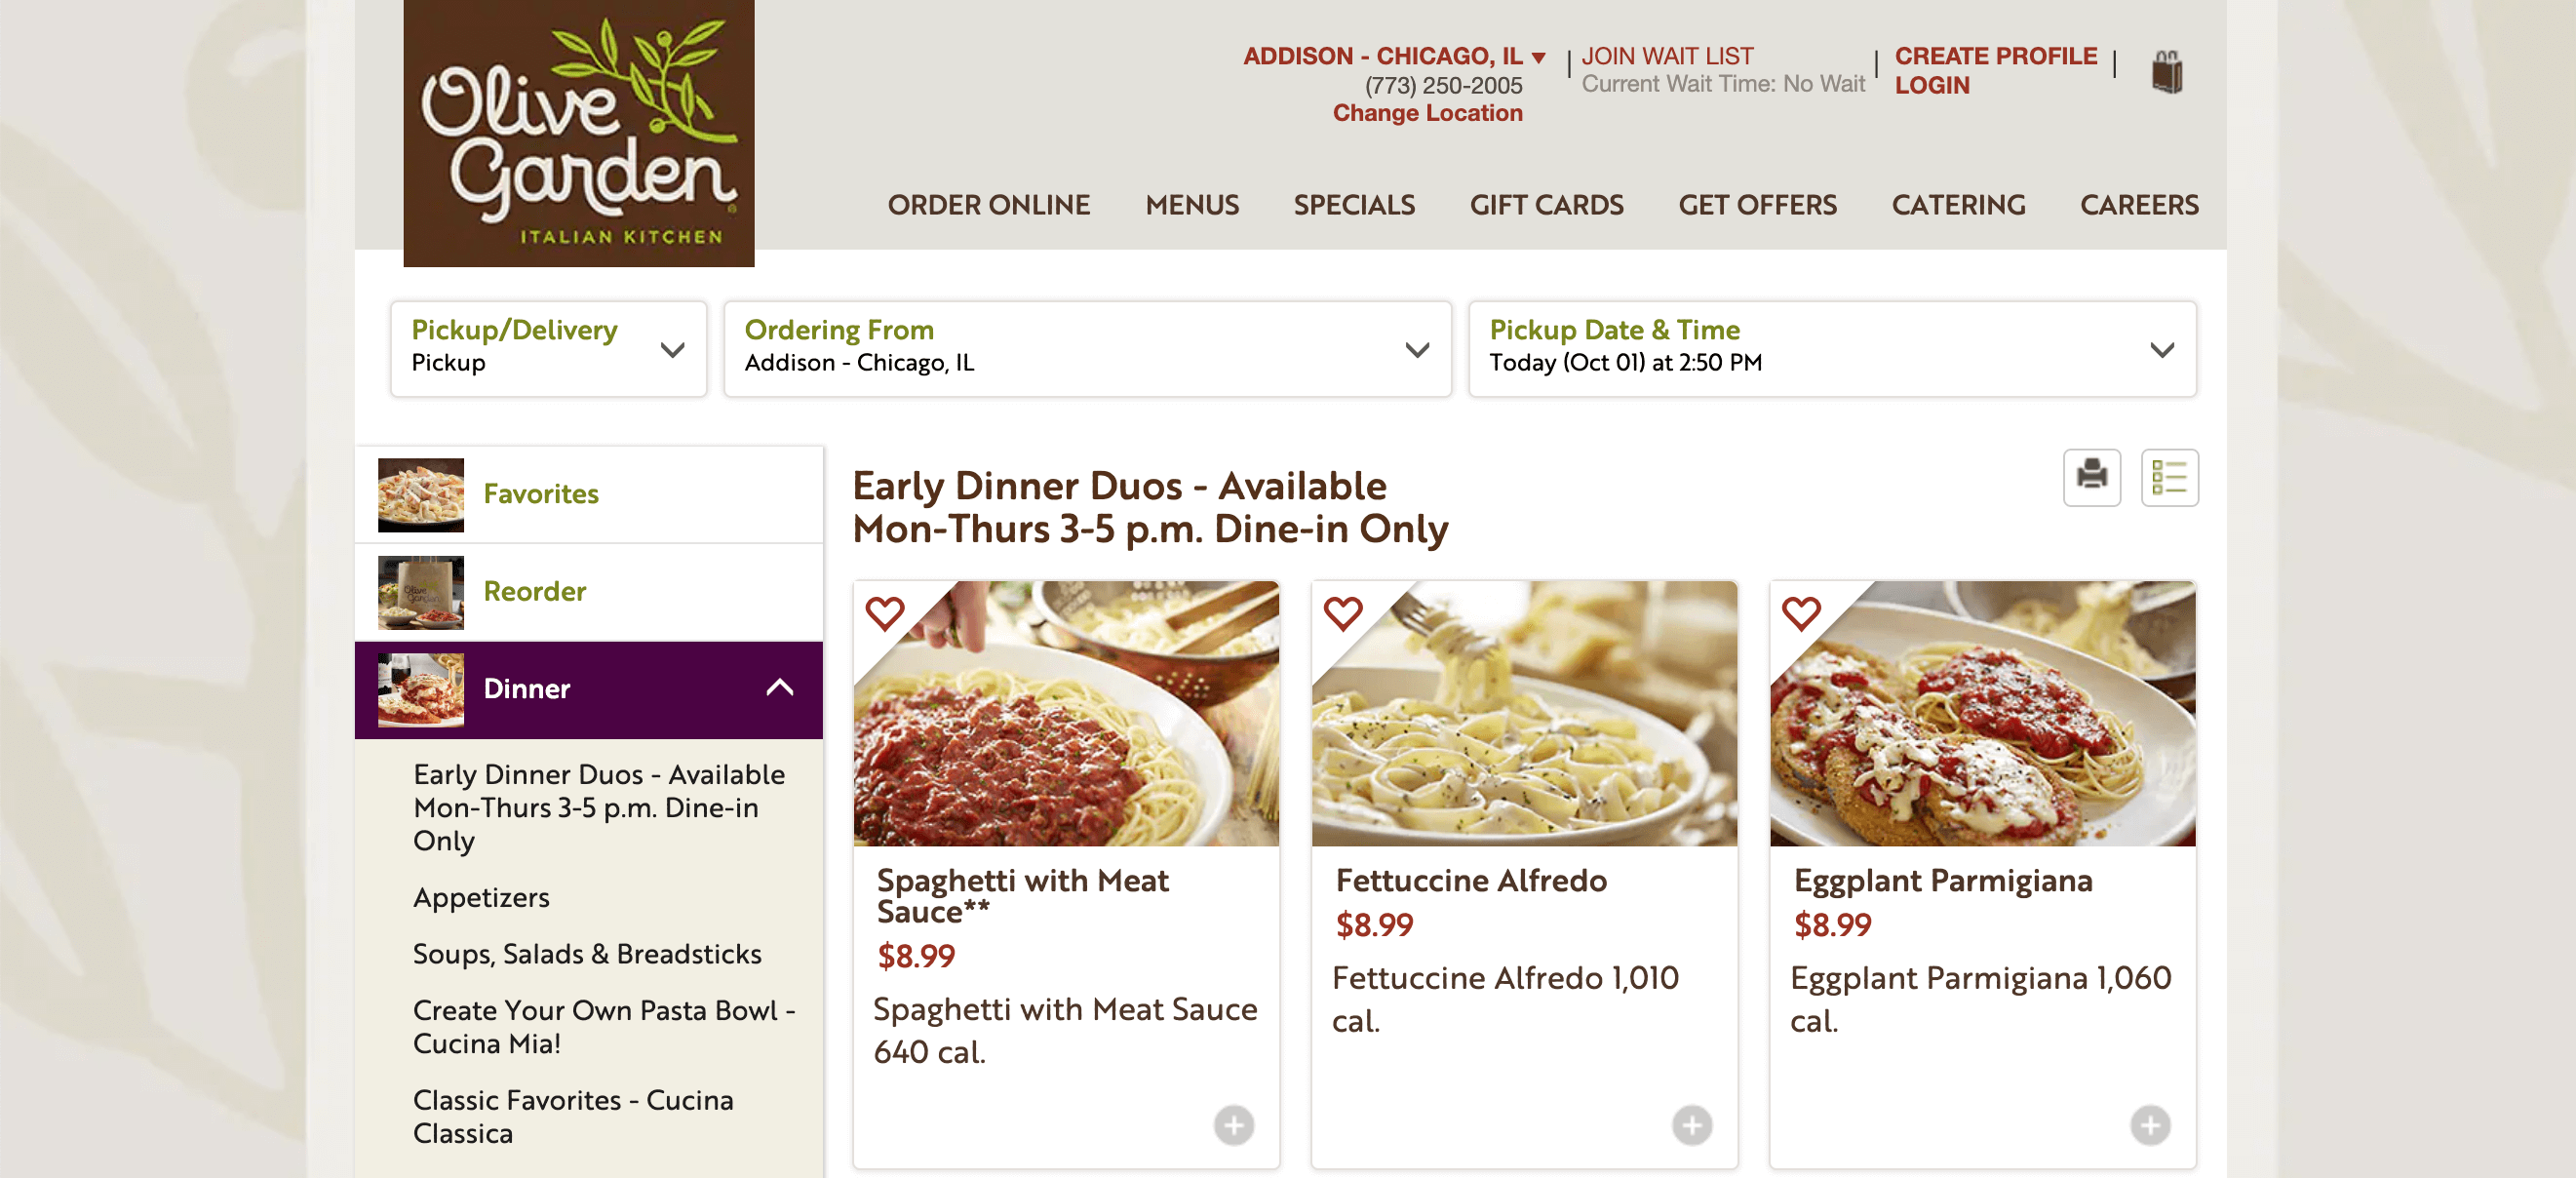 The Menu page for Olive Garden.